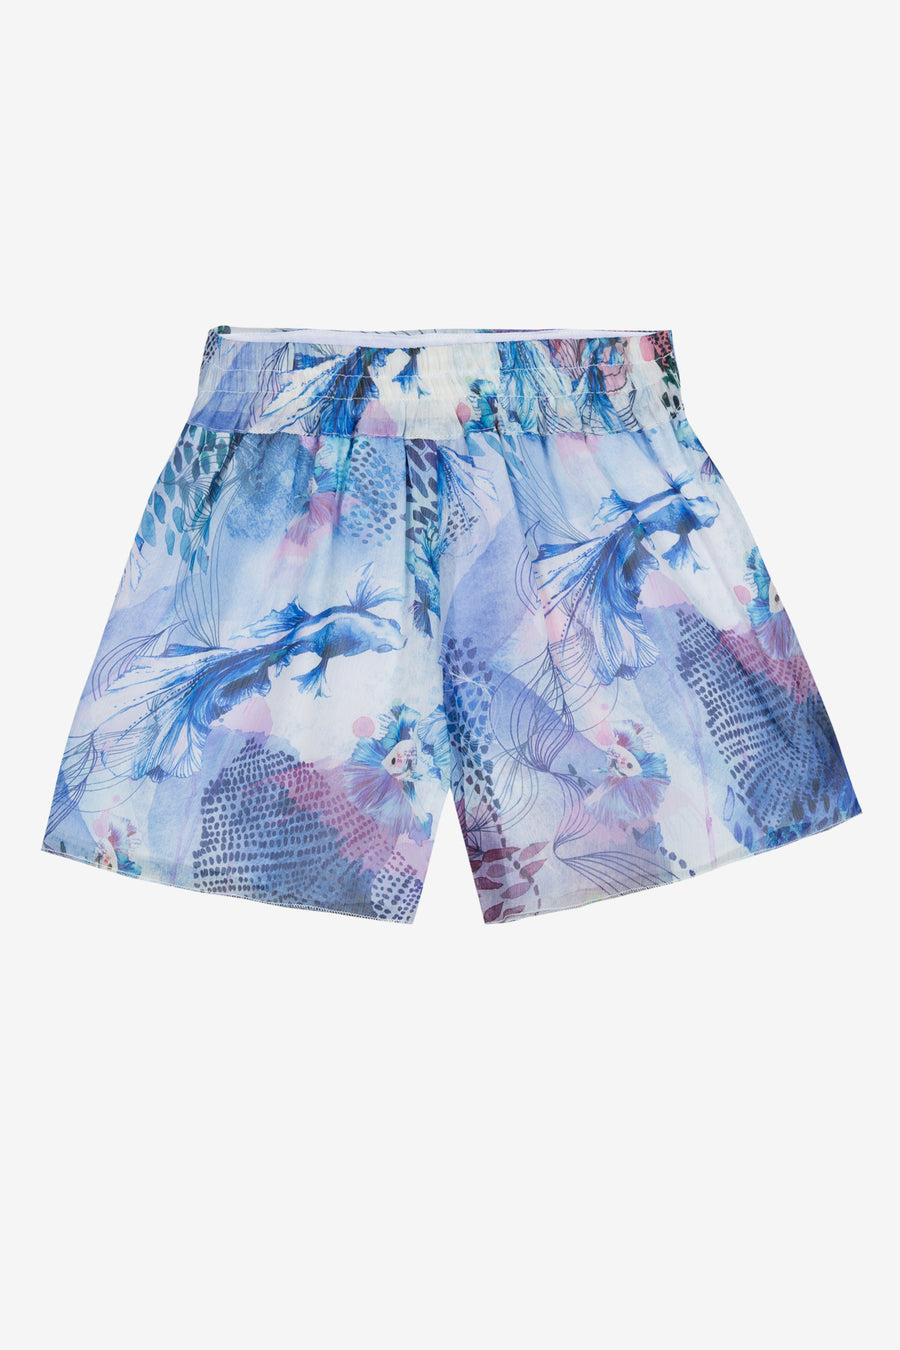 3pommes Mermaid Shorts